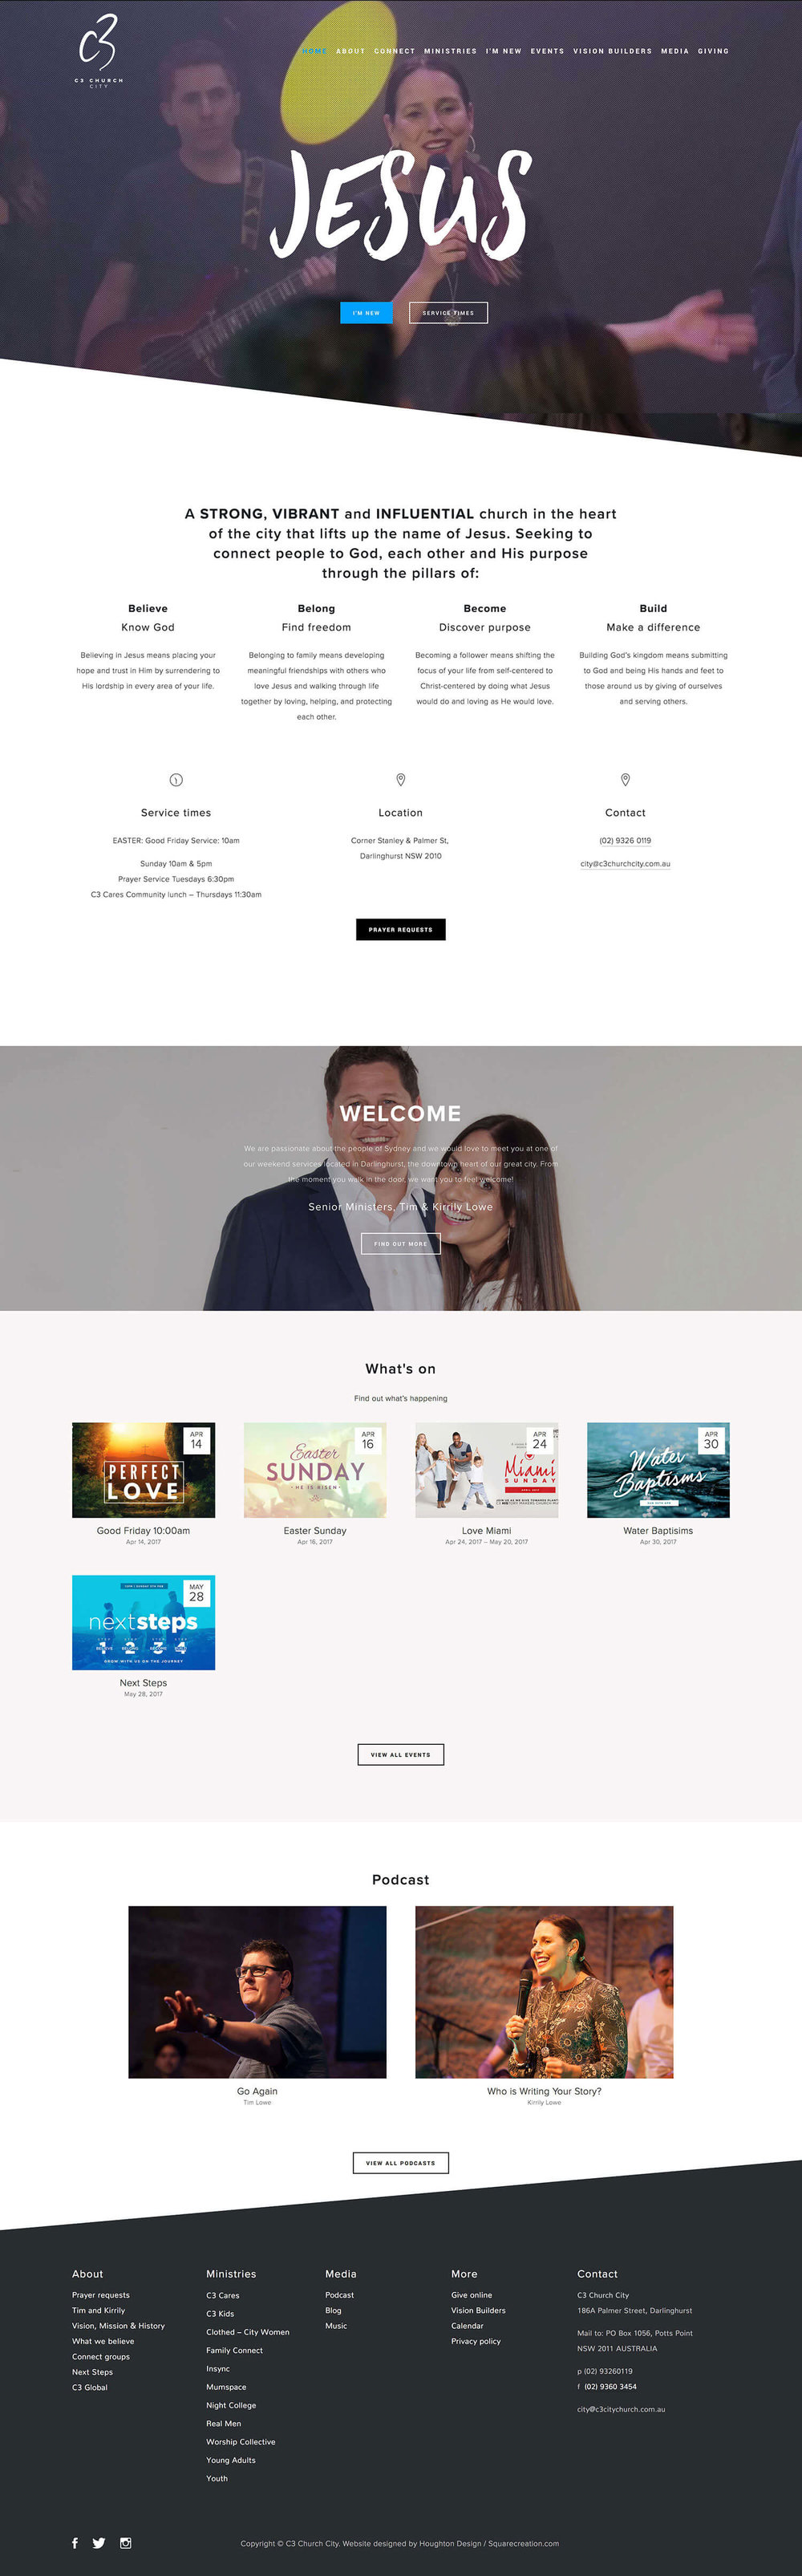 C3 Church City – Home page